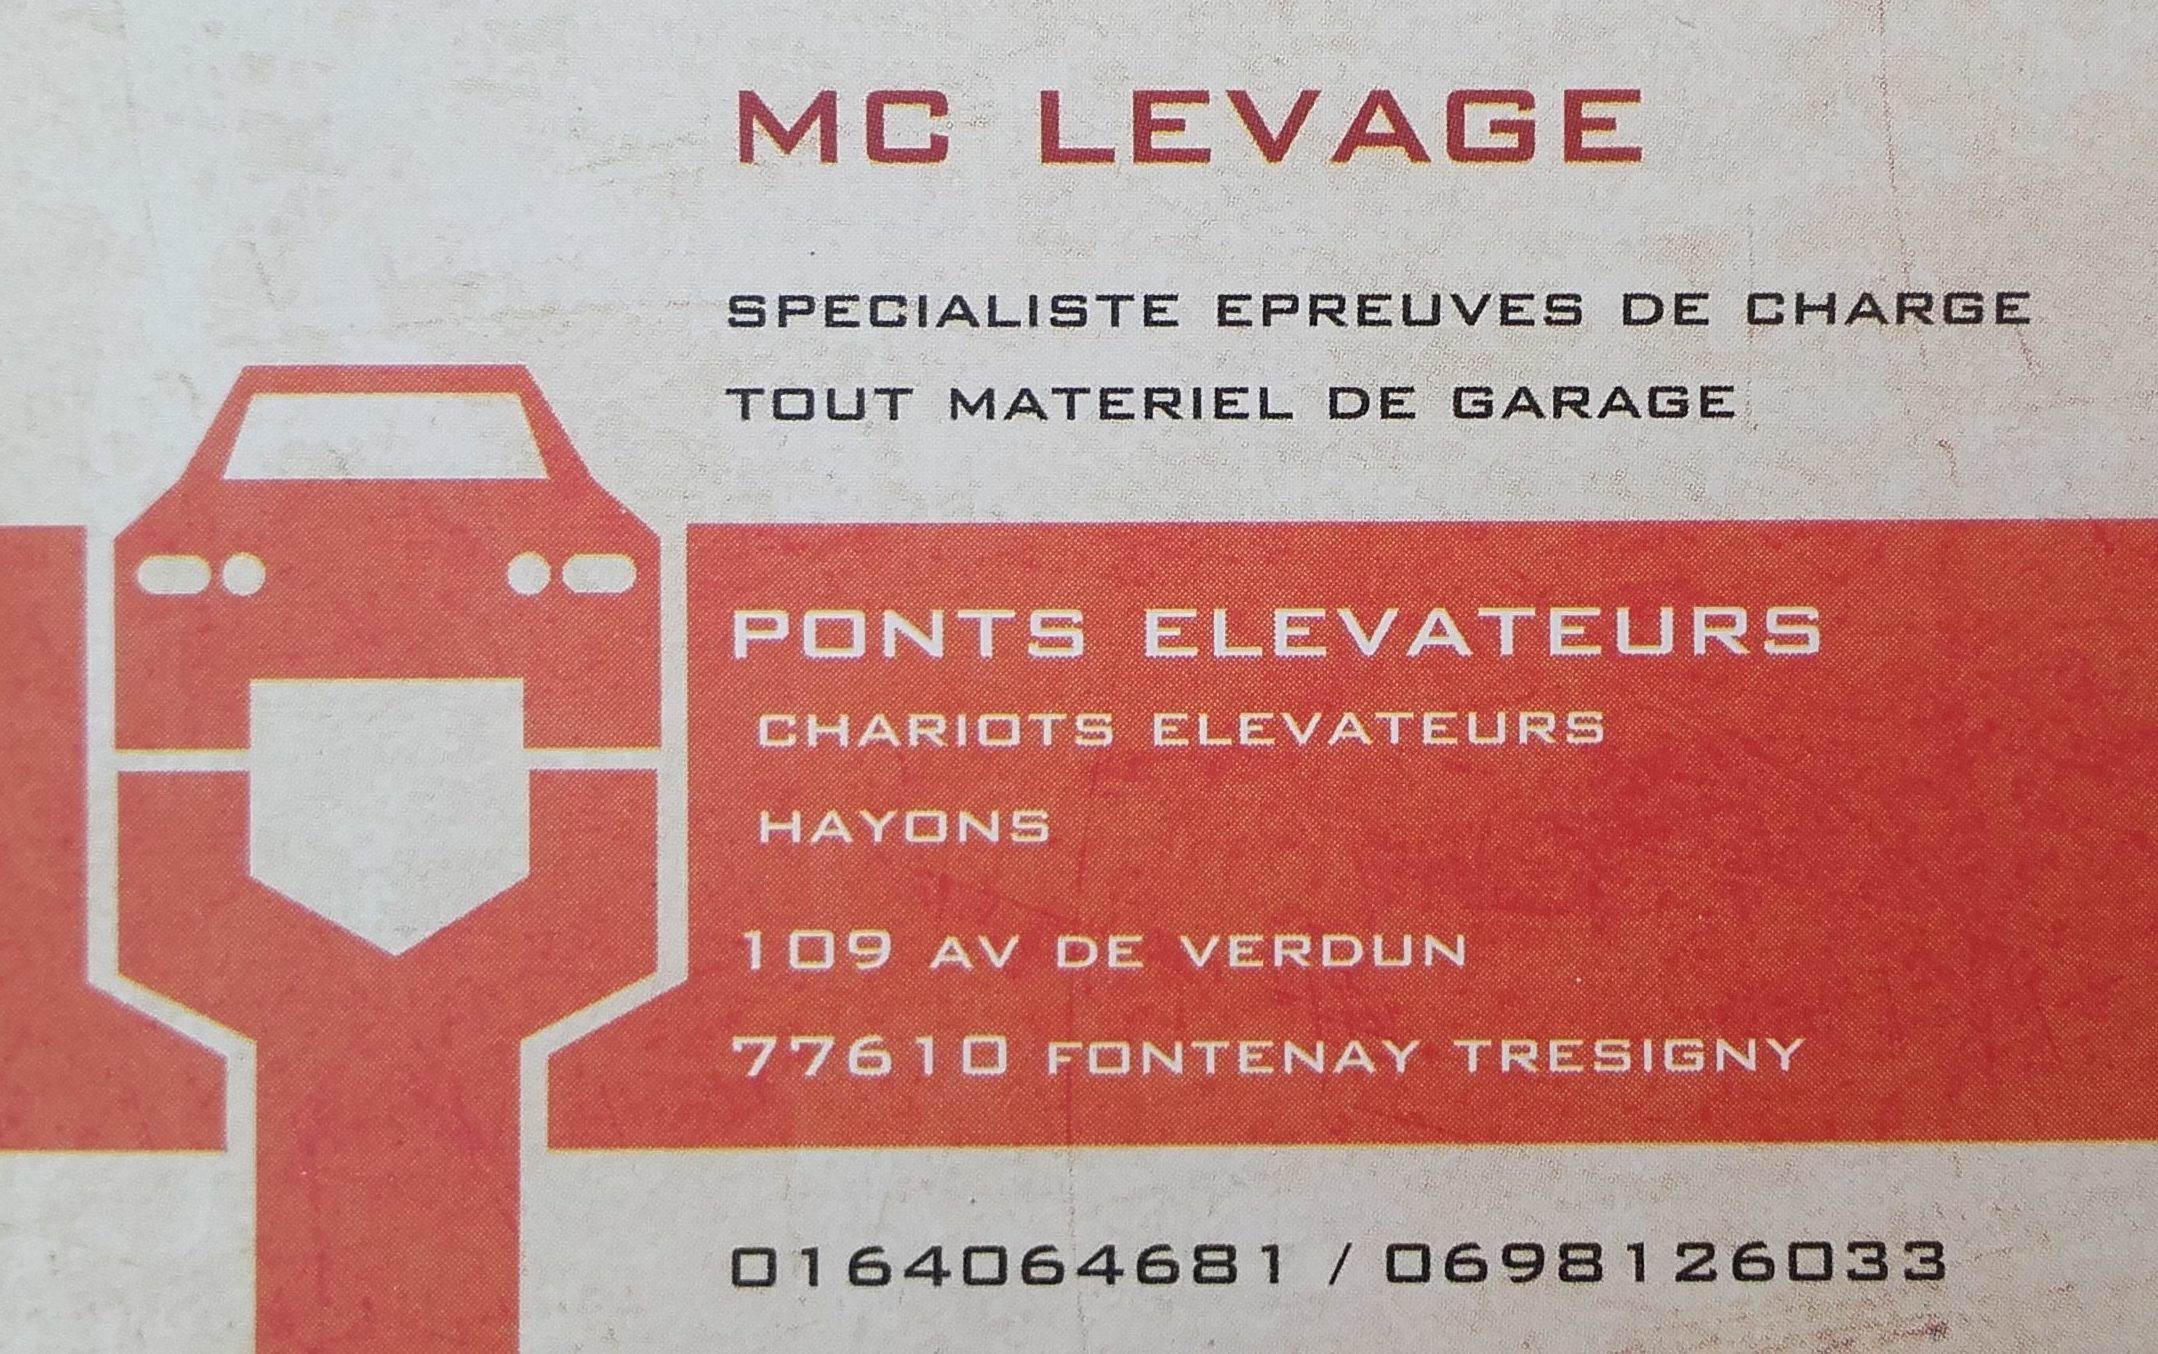 contact soc mc levage au travers de la carte de visite